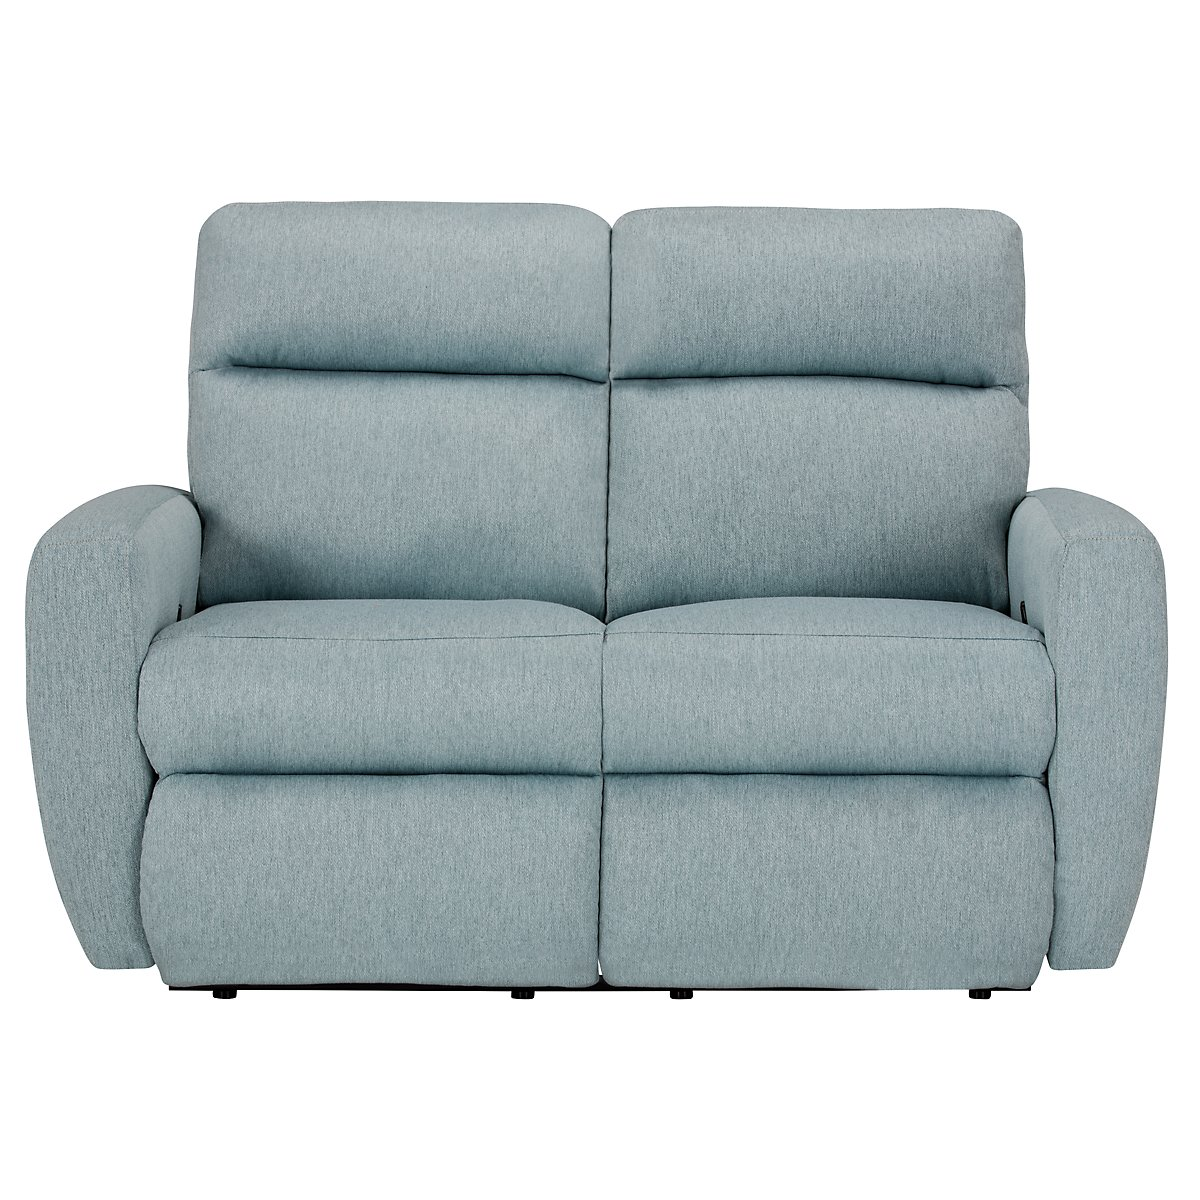 rolled products item arms loveseat belleview height with width trim reclining klaussner classic belleviewreclining threshold